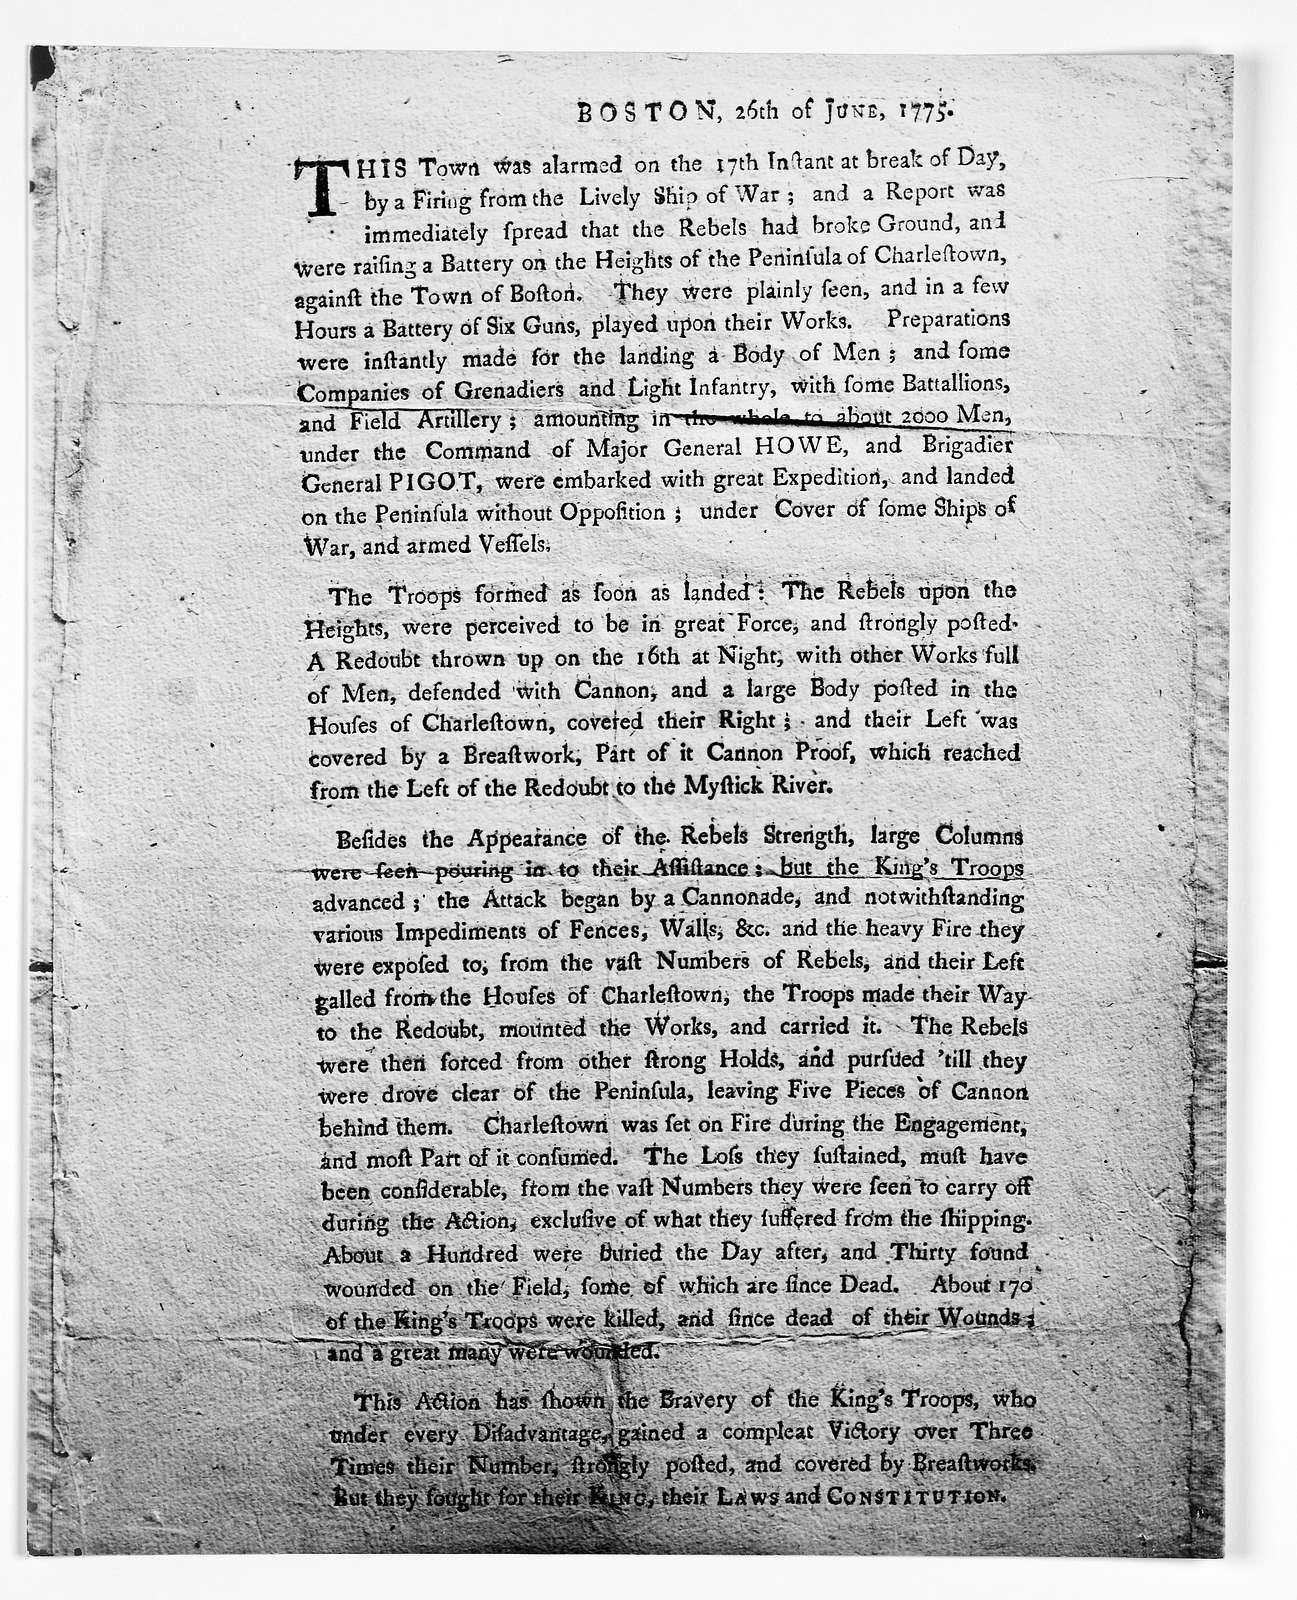 Boston, 26th of June, 1775. This town was alarmed on the 17th instant at break of day, by a firing from the lively ship of war; and a report was immediately spread that the rebels had broke ground and were raising a battery on the heights of the